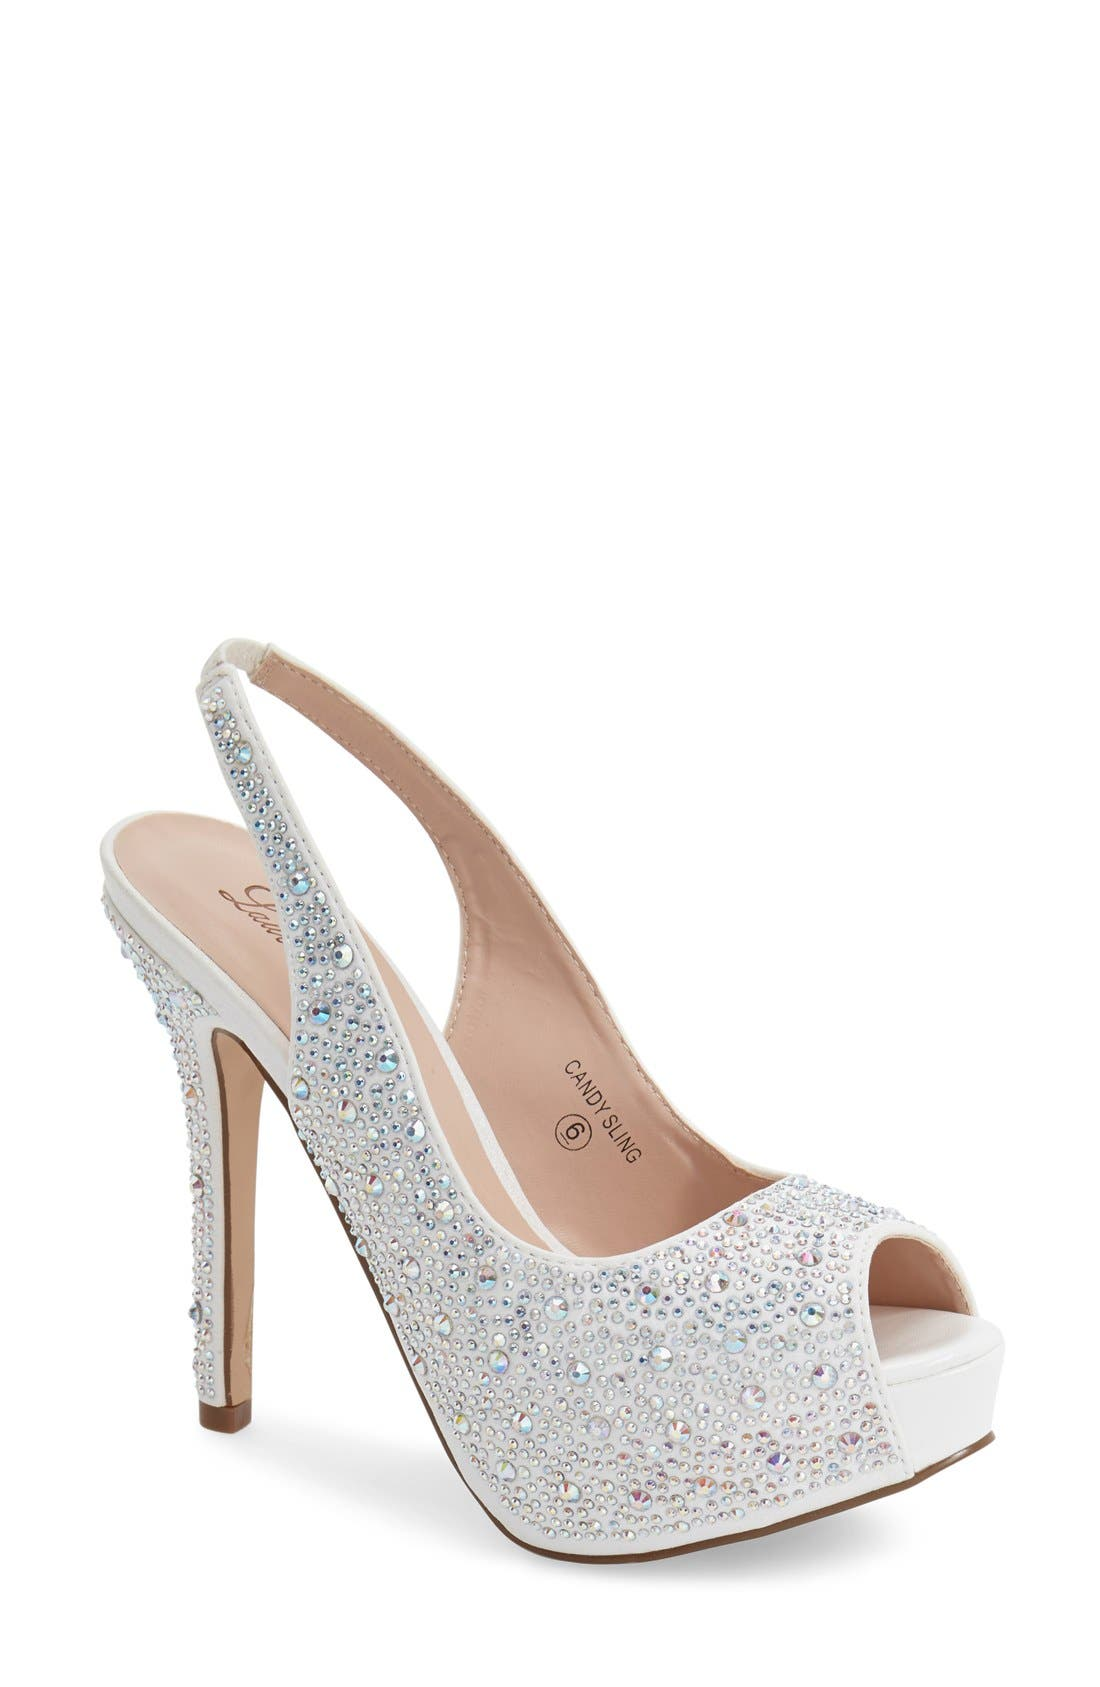 Lauren Lorraine 'Candy' Crystal Slingback Pump (Women)